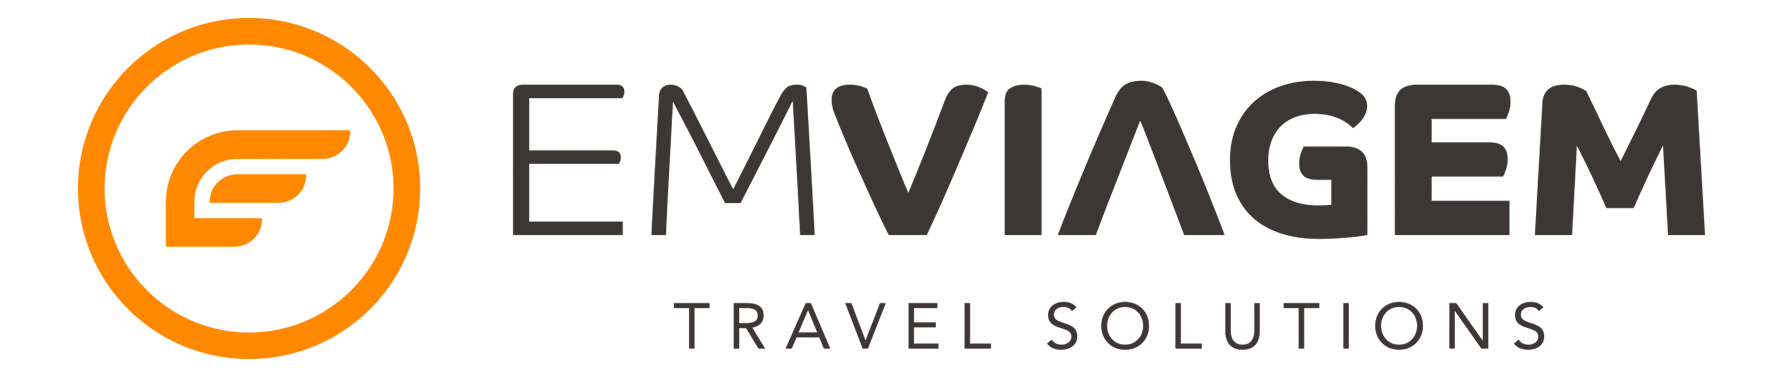 Emviagem - Travel Solutions